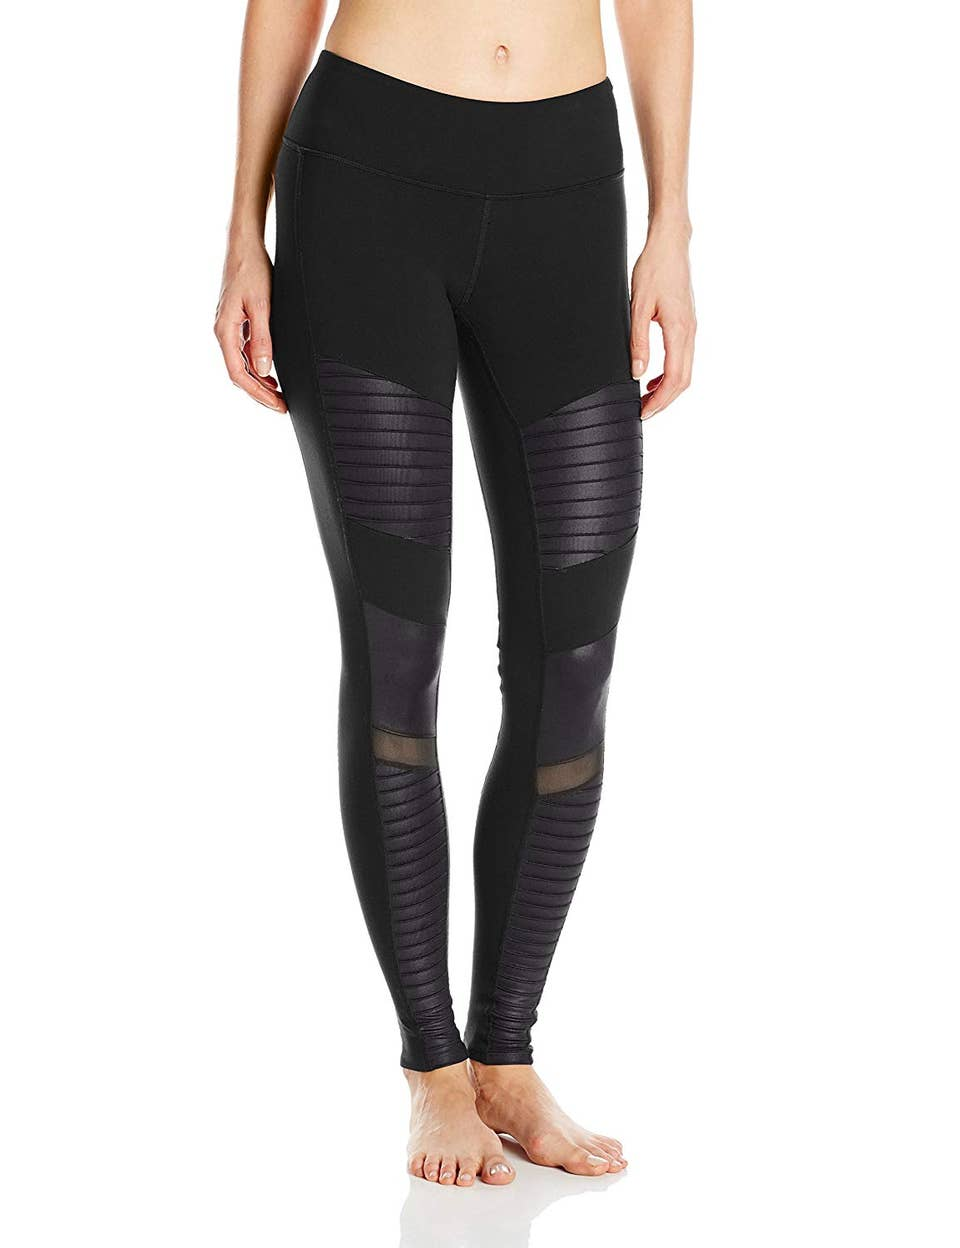 Best Womens Black Leggings On Amazon 2020 Top Reviews